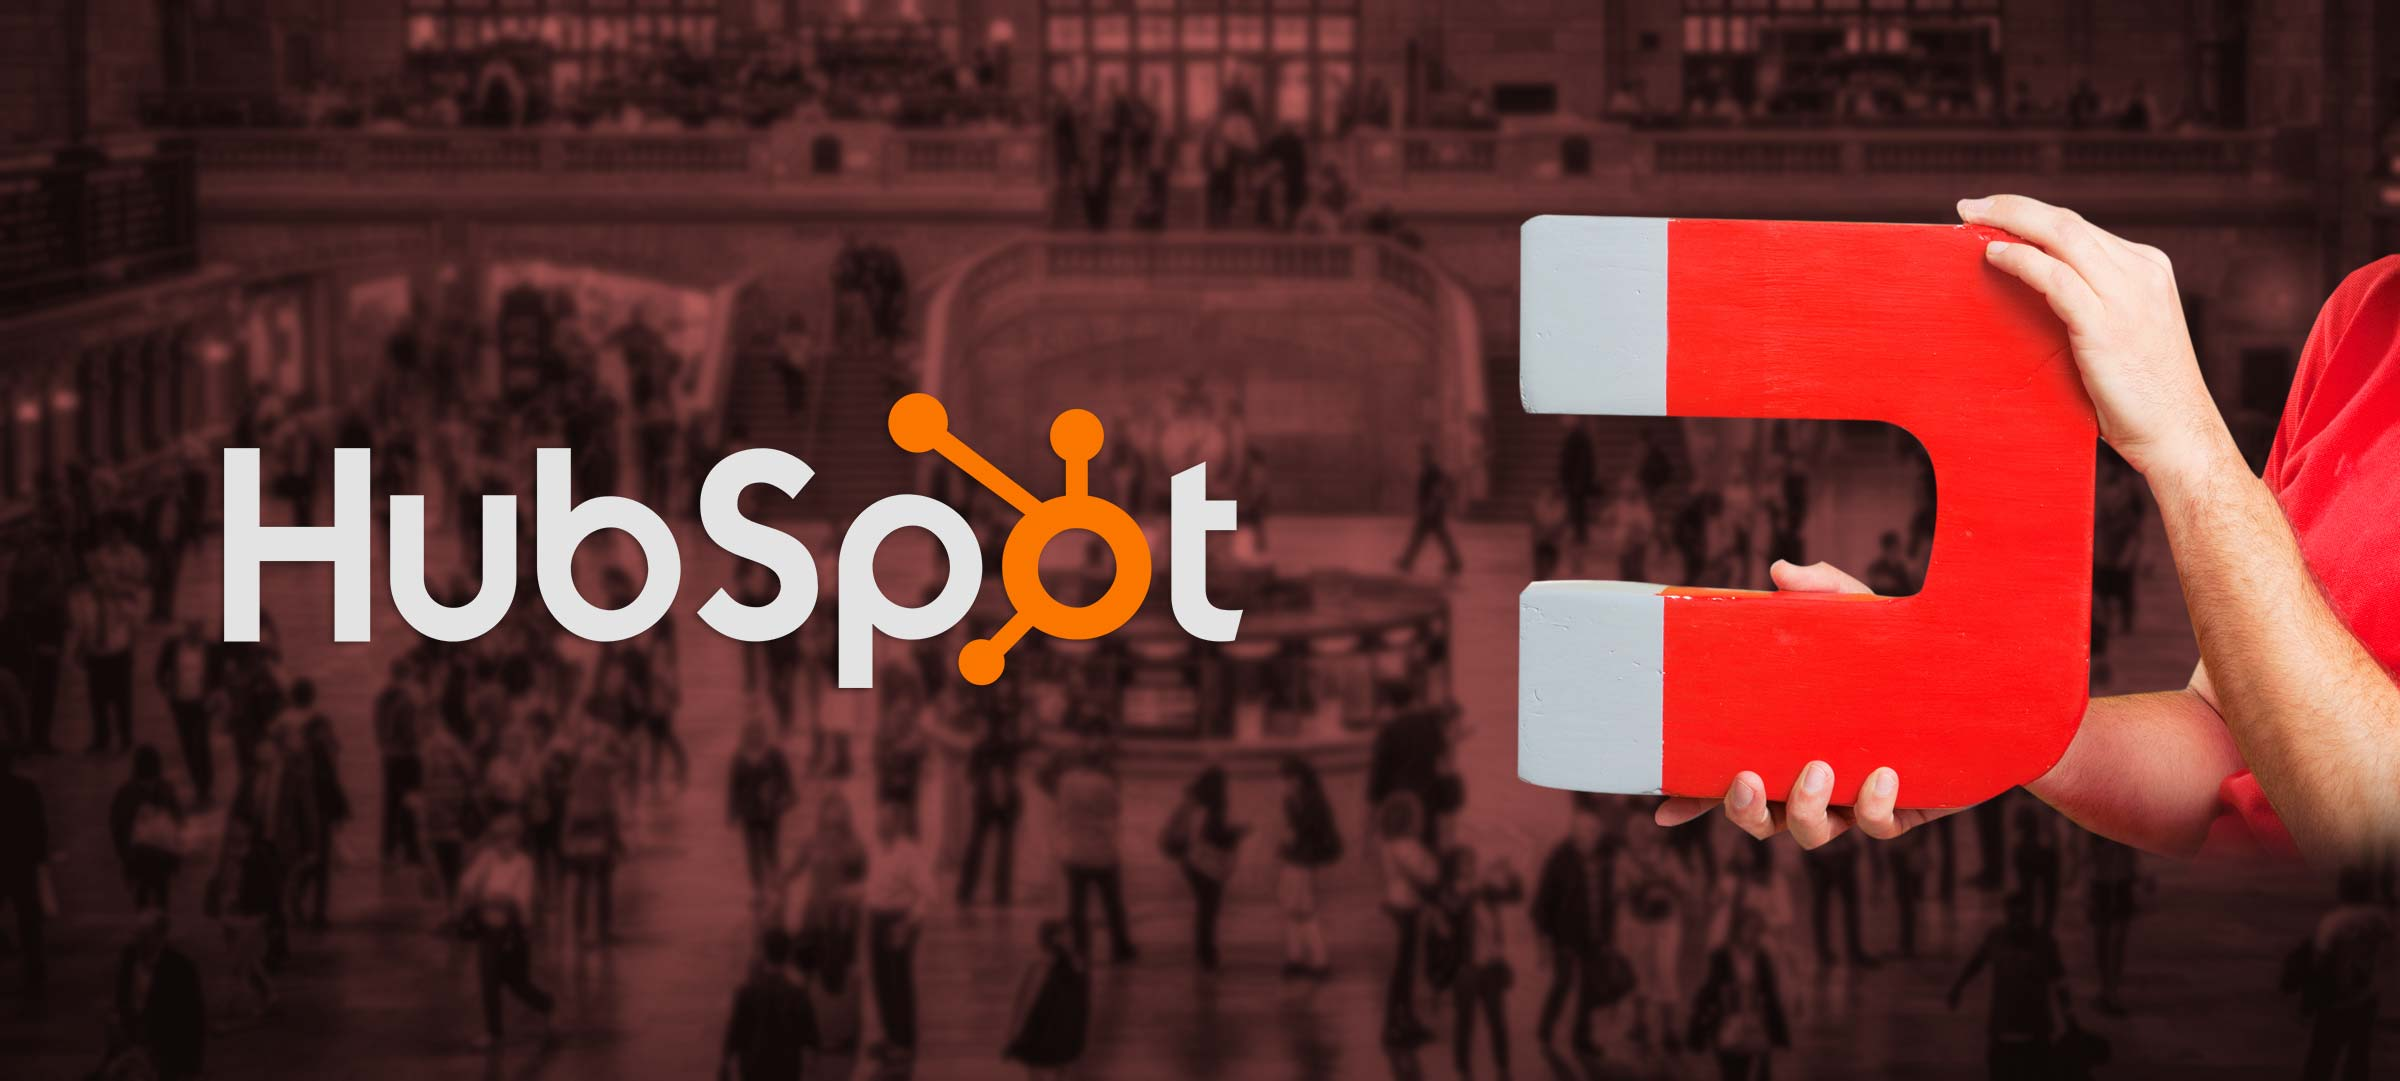 How Hubspot is the best platform for Inbound Marketing